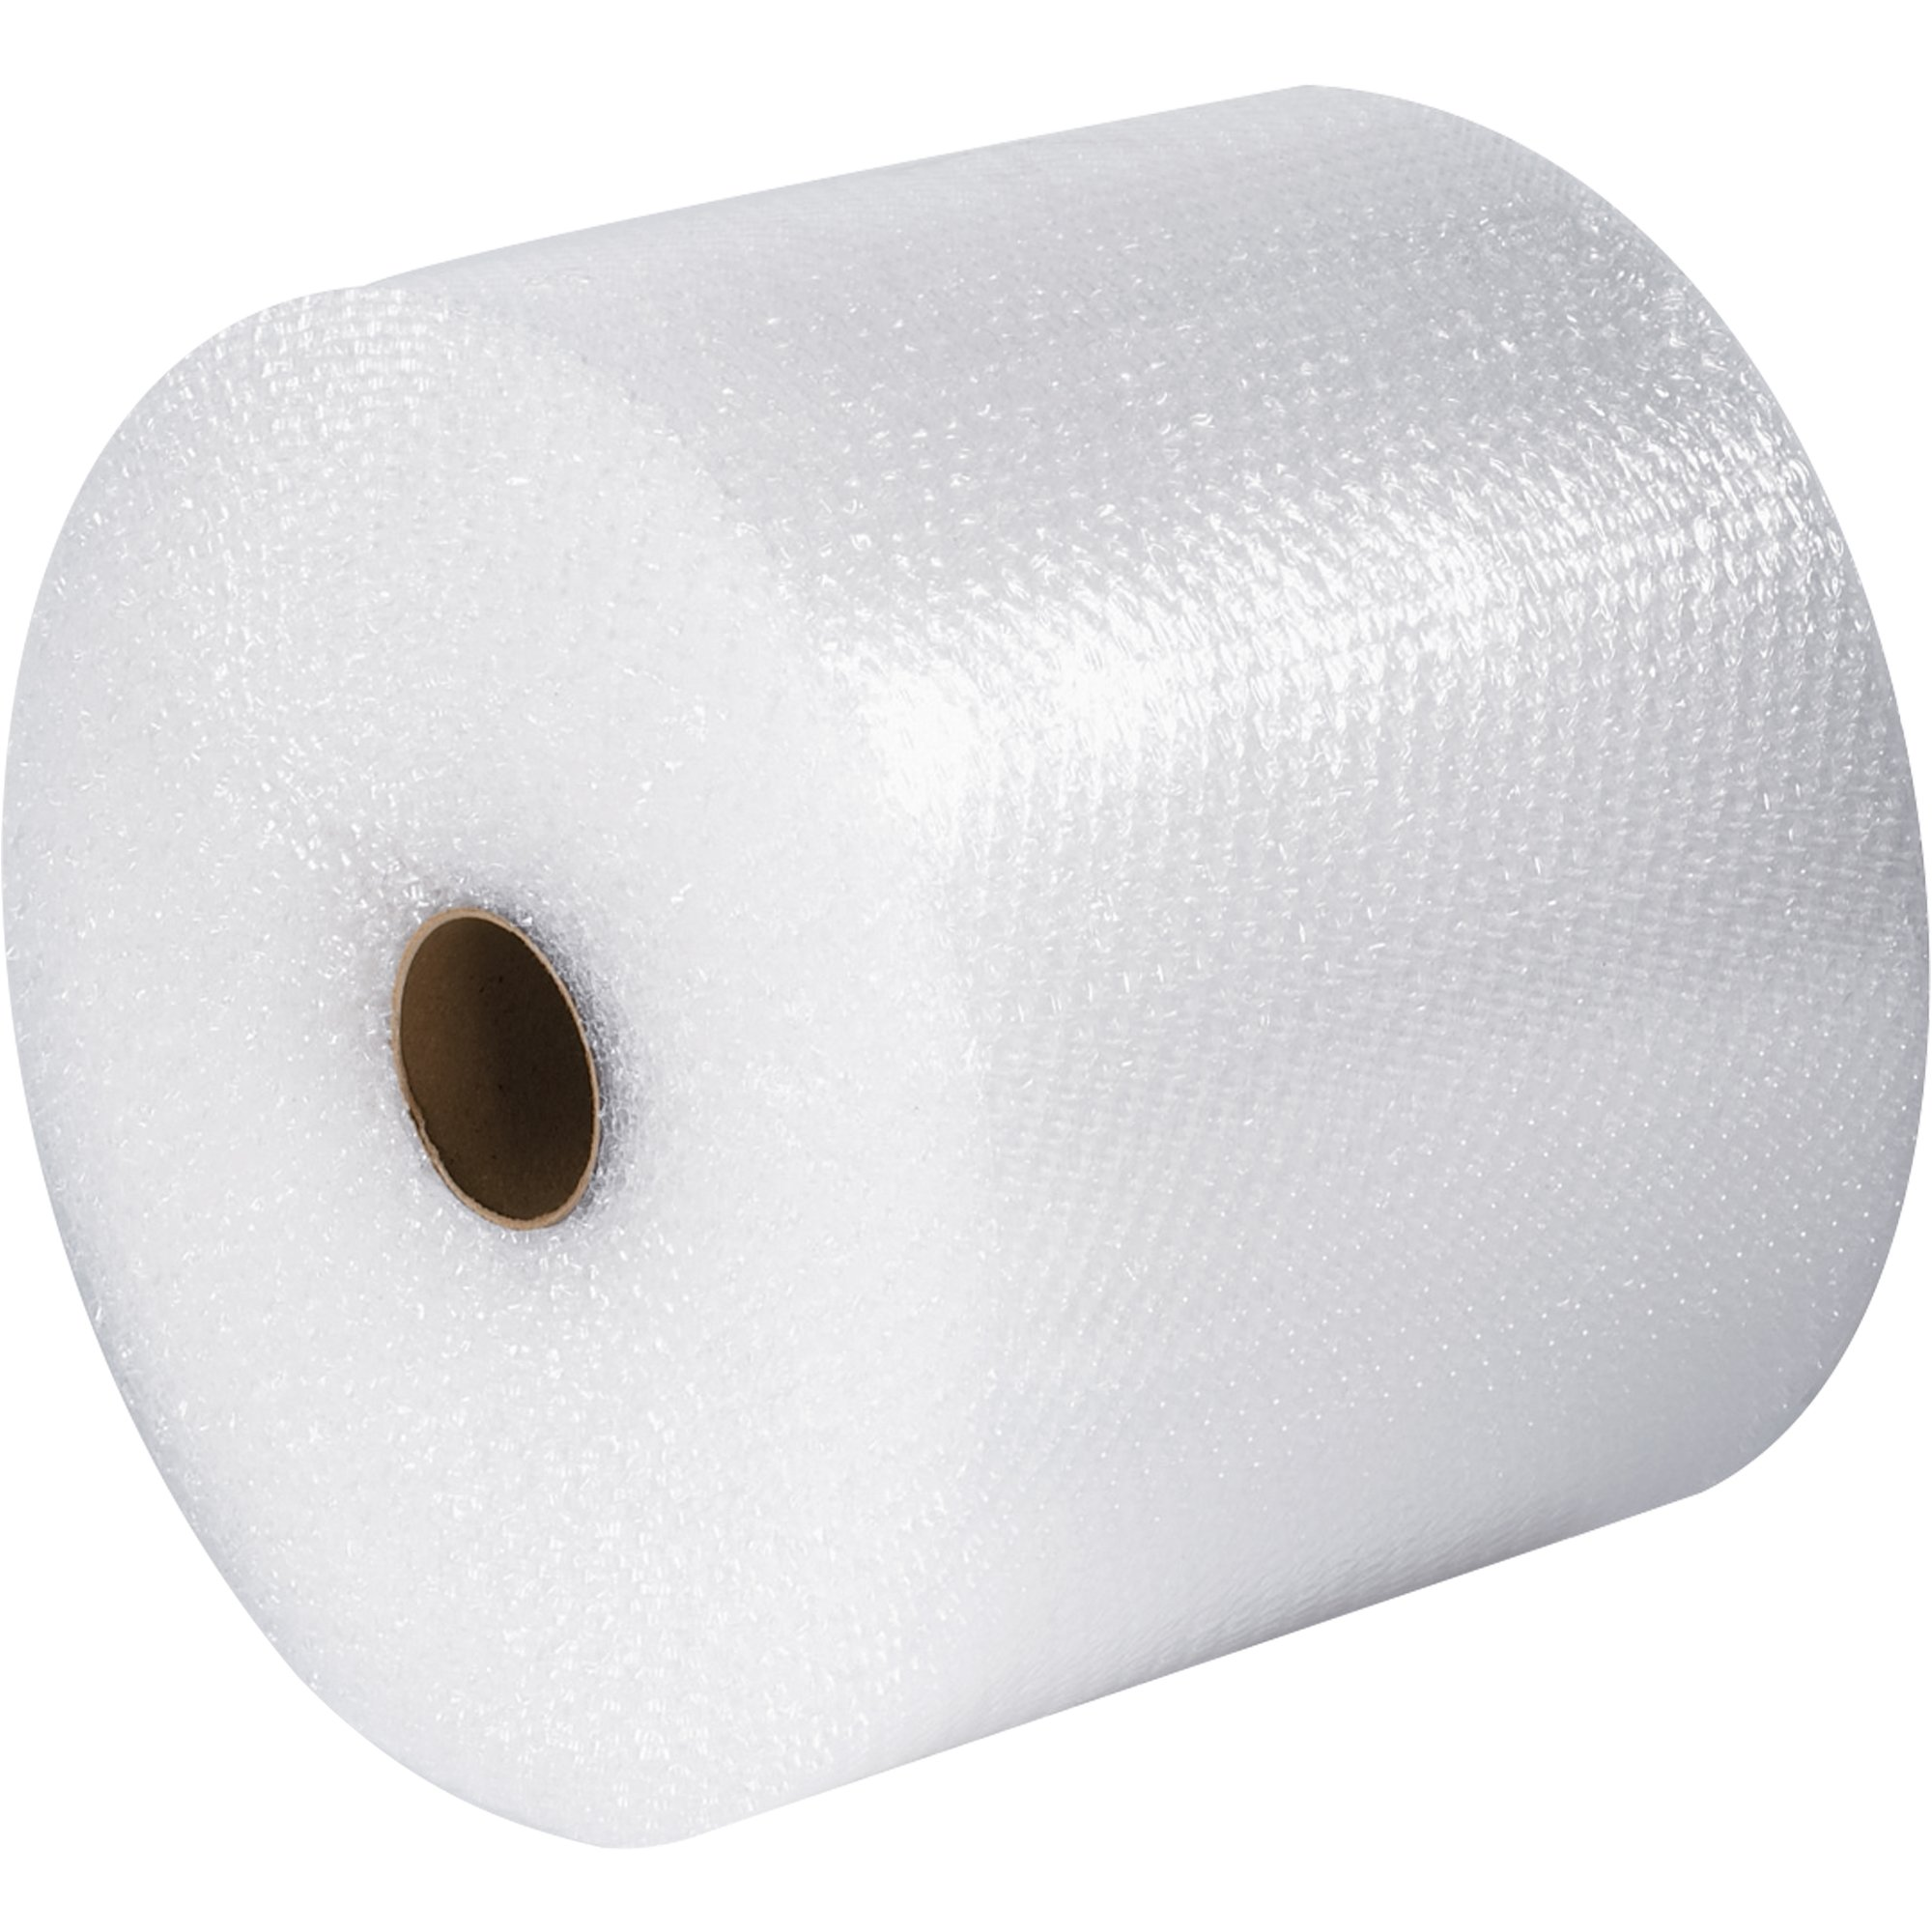 Boxes Fast BFBWUP31648 UPSable Air Bubble Rolls, 3/16'' x 48'' x 300', Clear (Pack of 1)